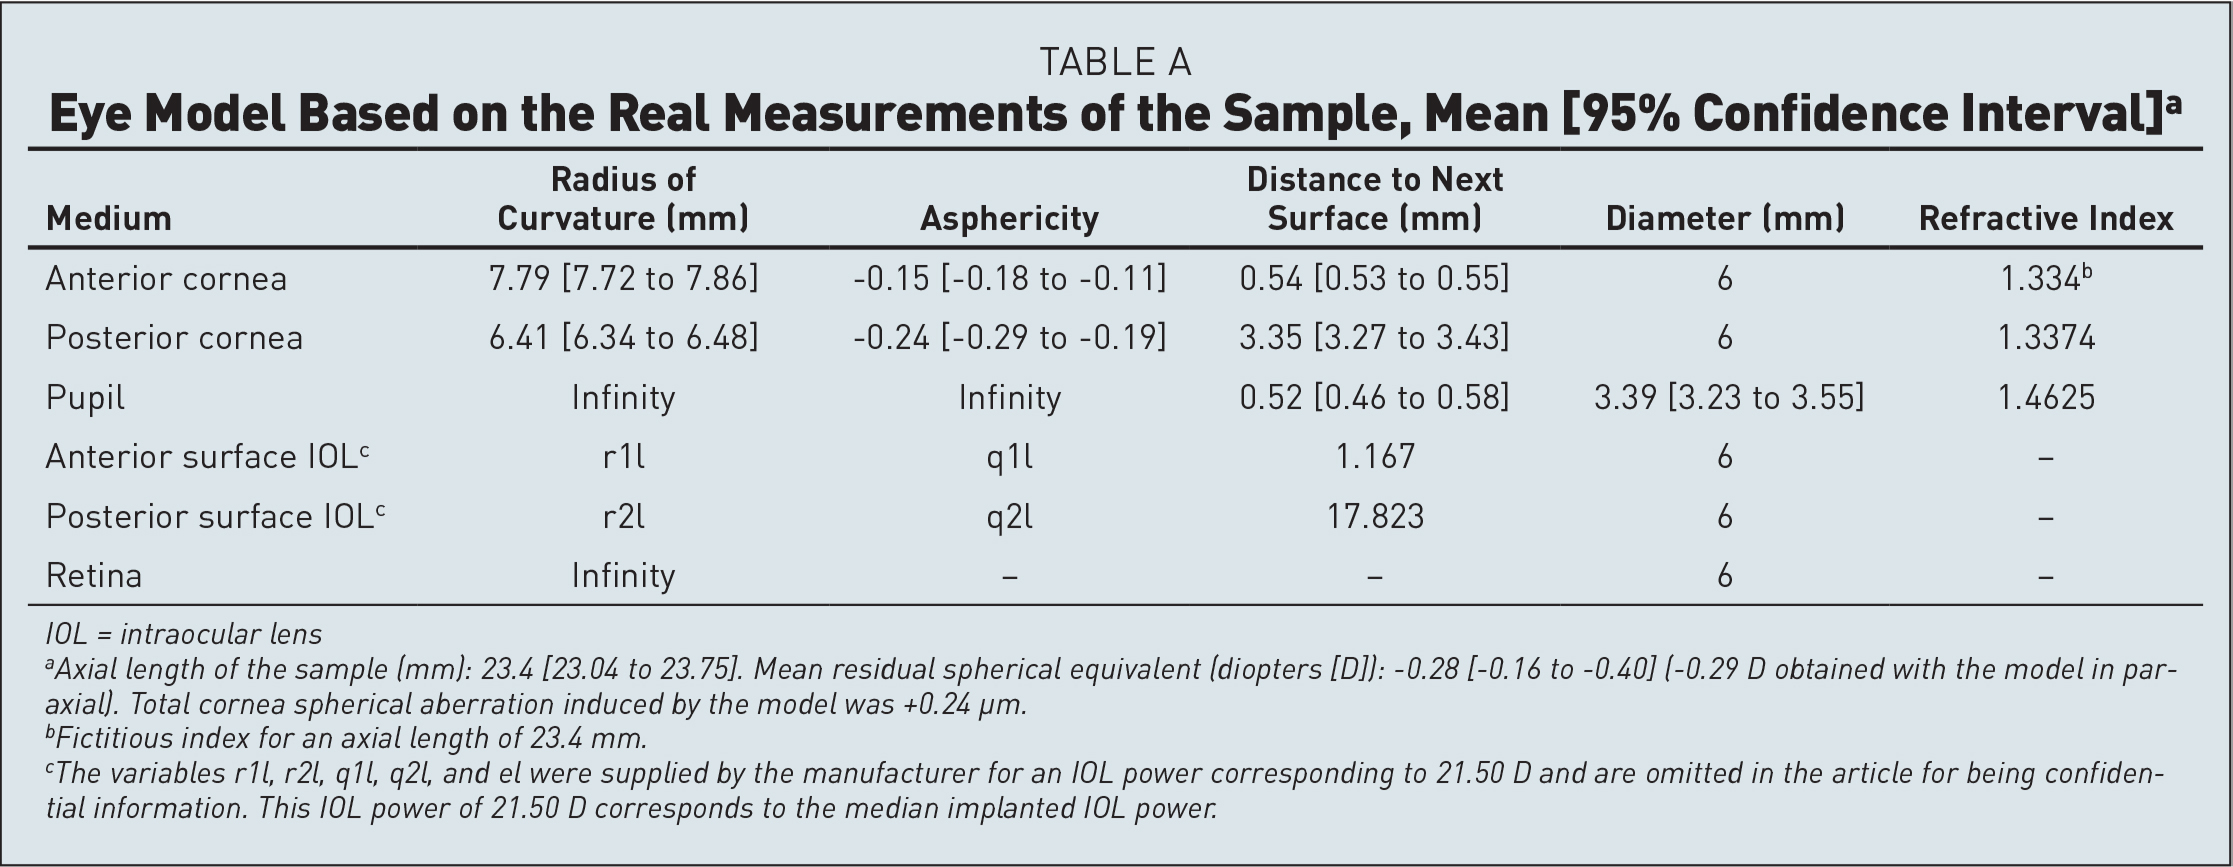 Eye Model Based on the Real Measurements of the Sample, Mean [95% Confidence Interval]a